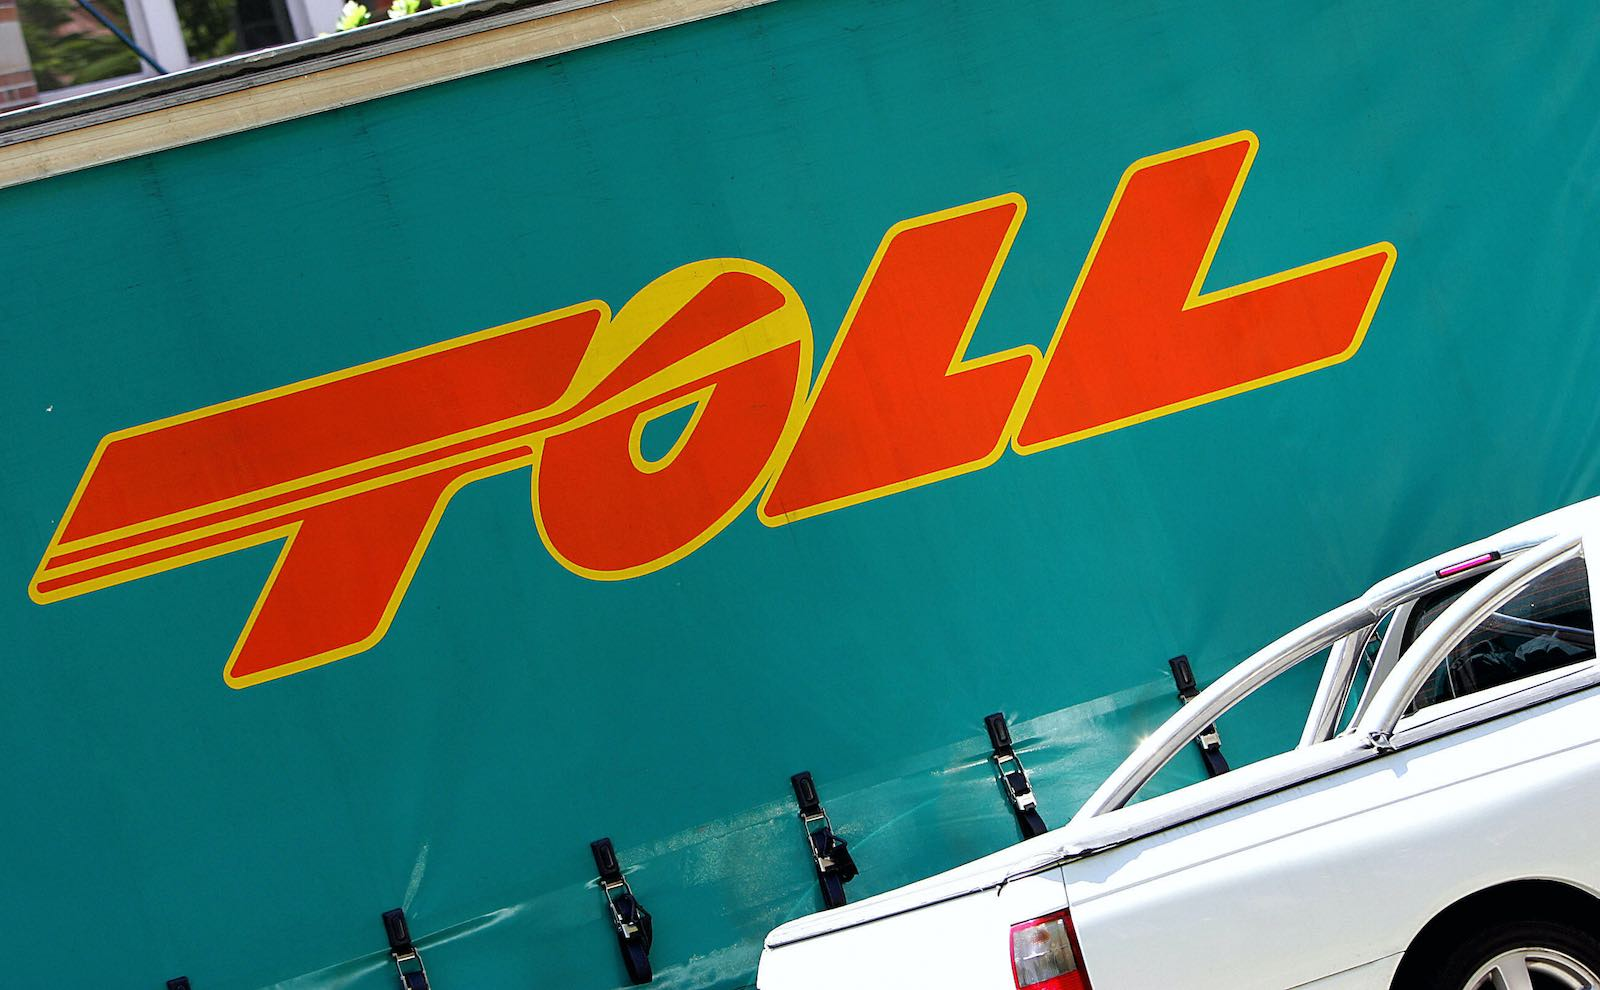 Japan Post has already written off $4.9 billion of its original purchase price of Toll Group (Greg Wood/AFP via Getty Images)